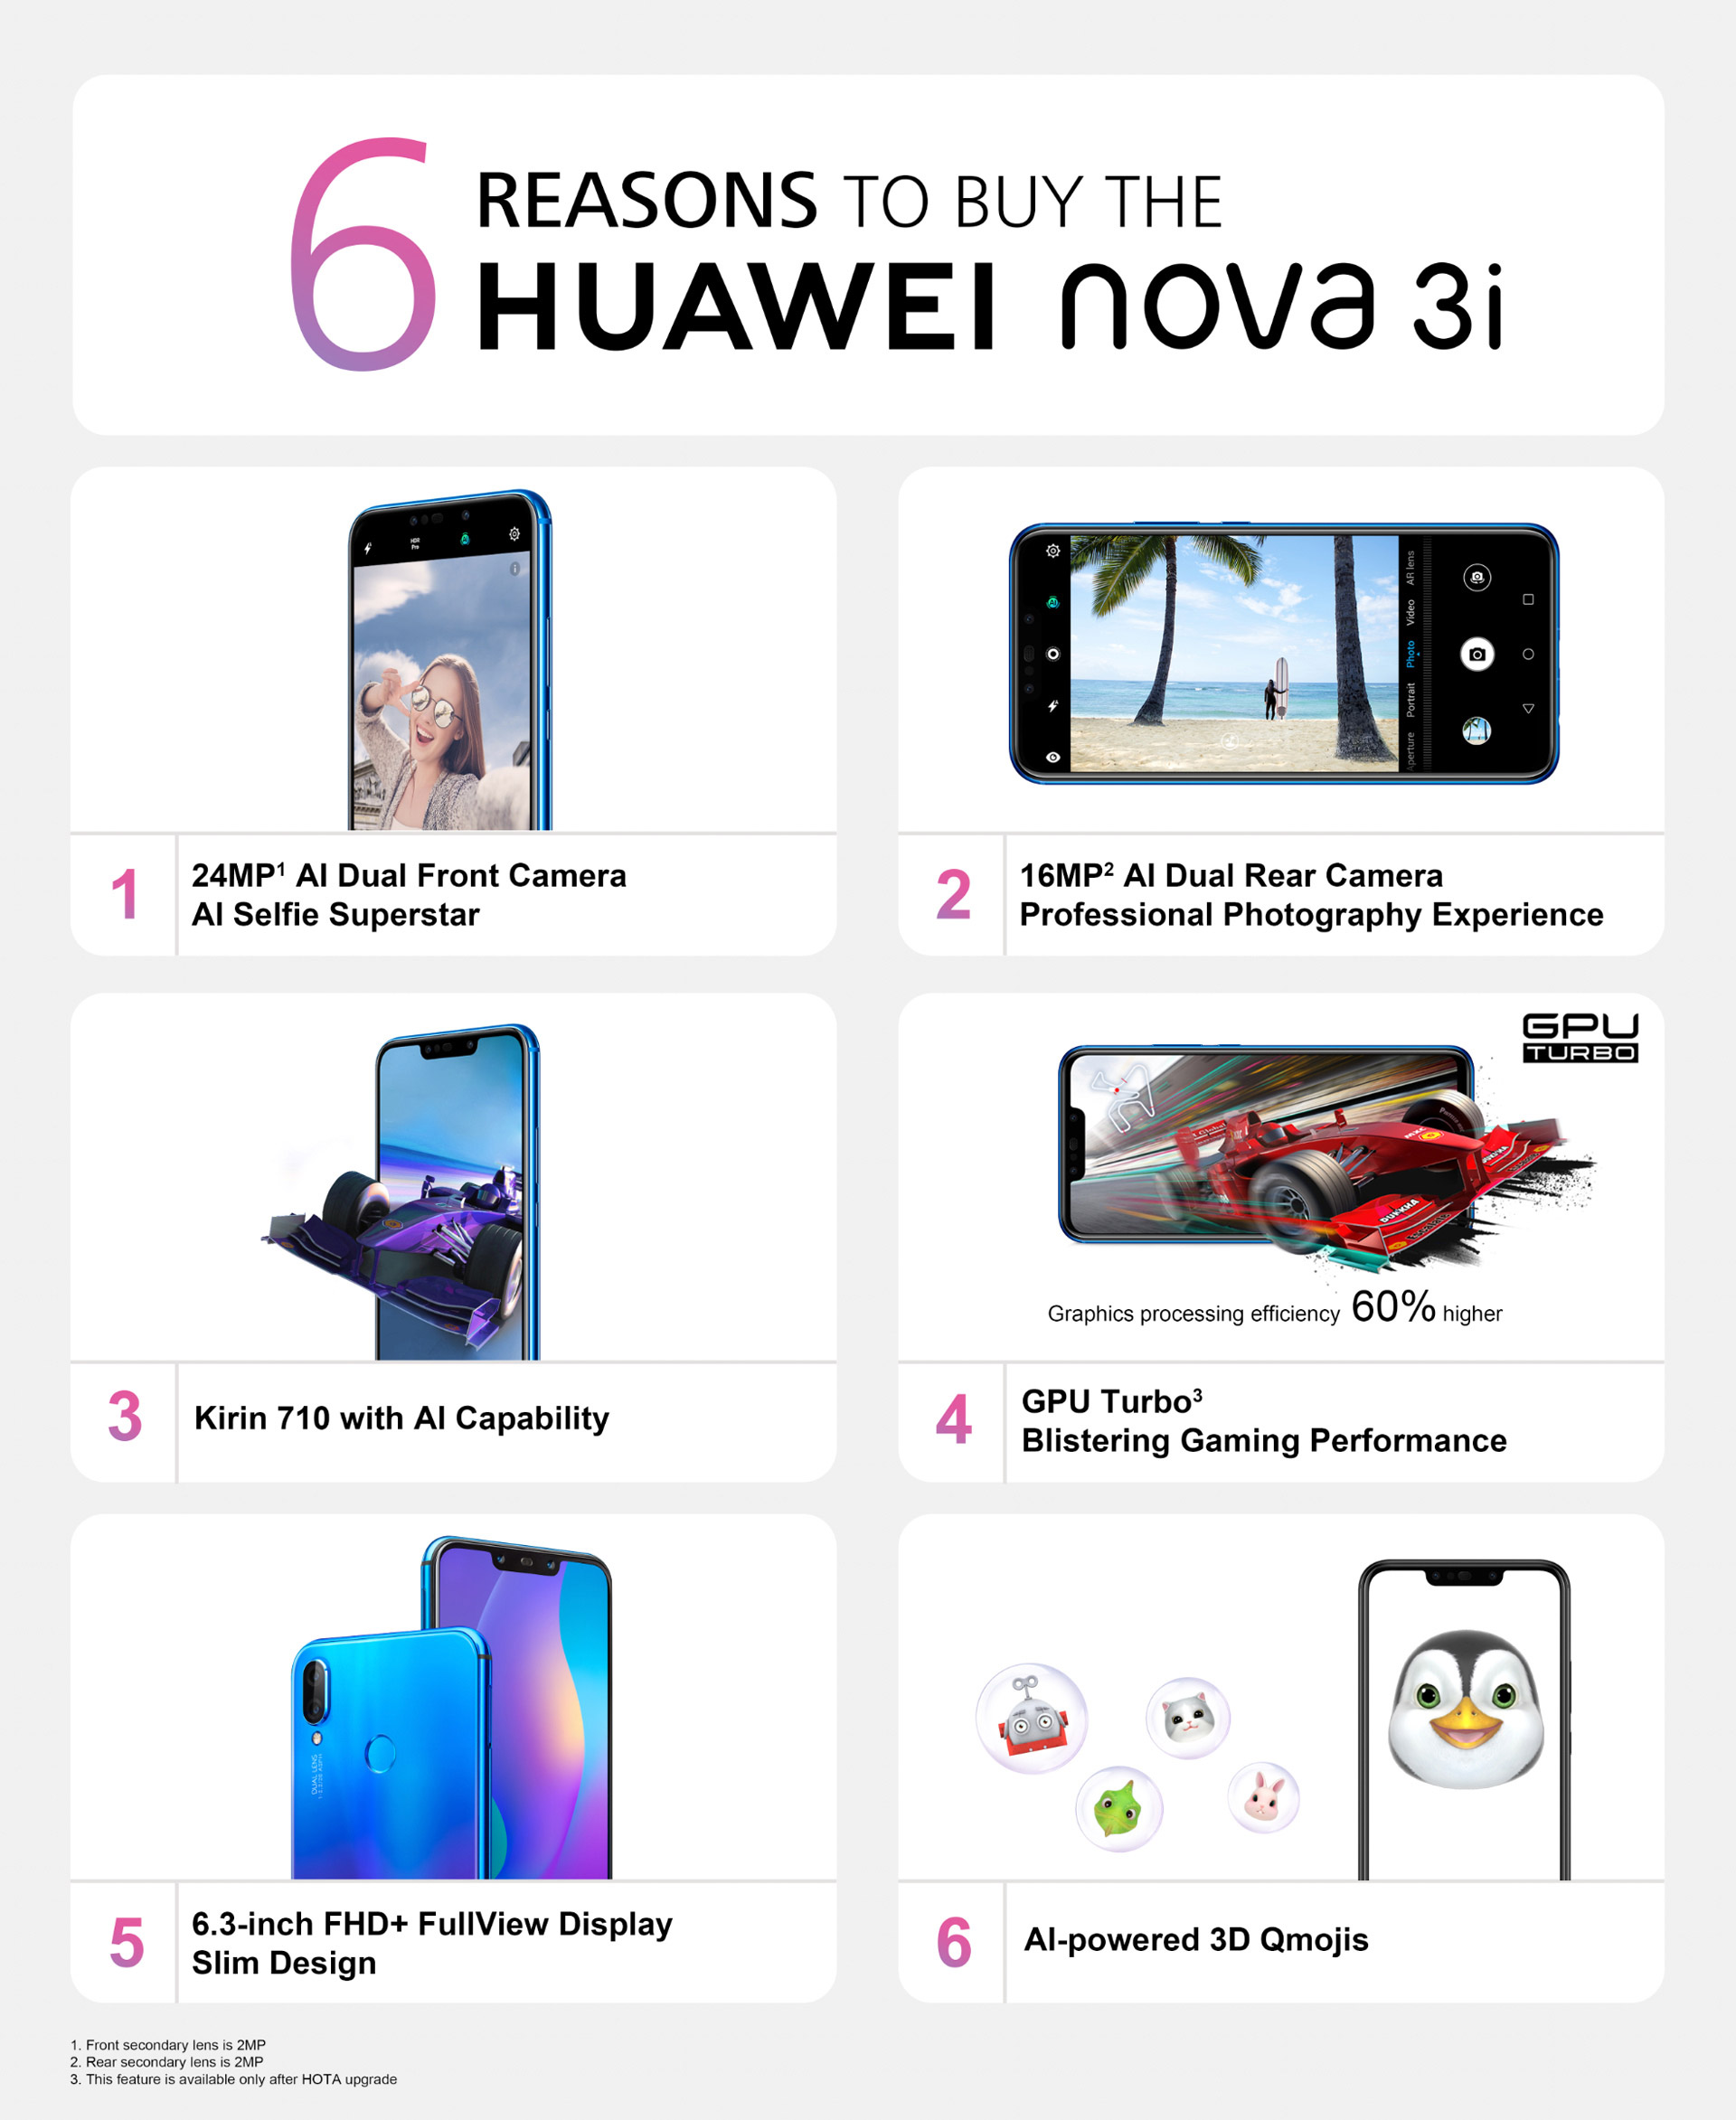 Six reasons to buy the HUAWEI nova 3i